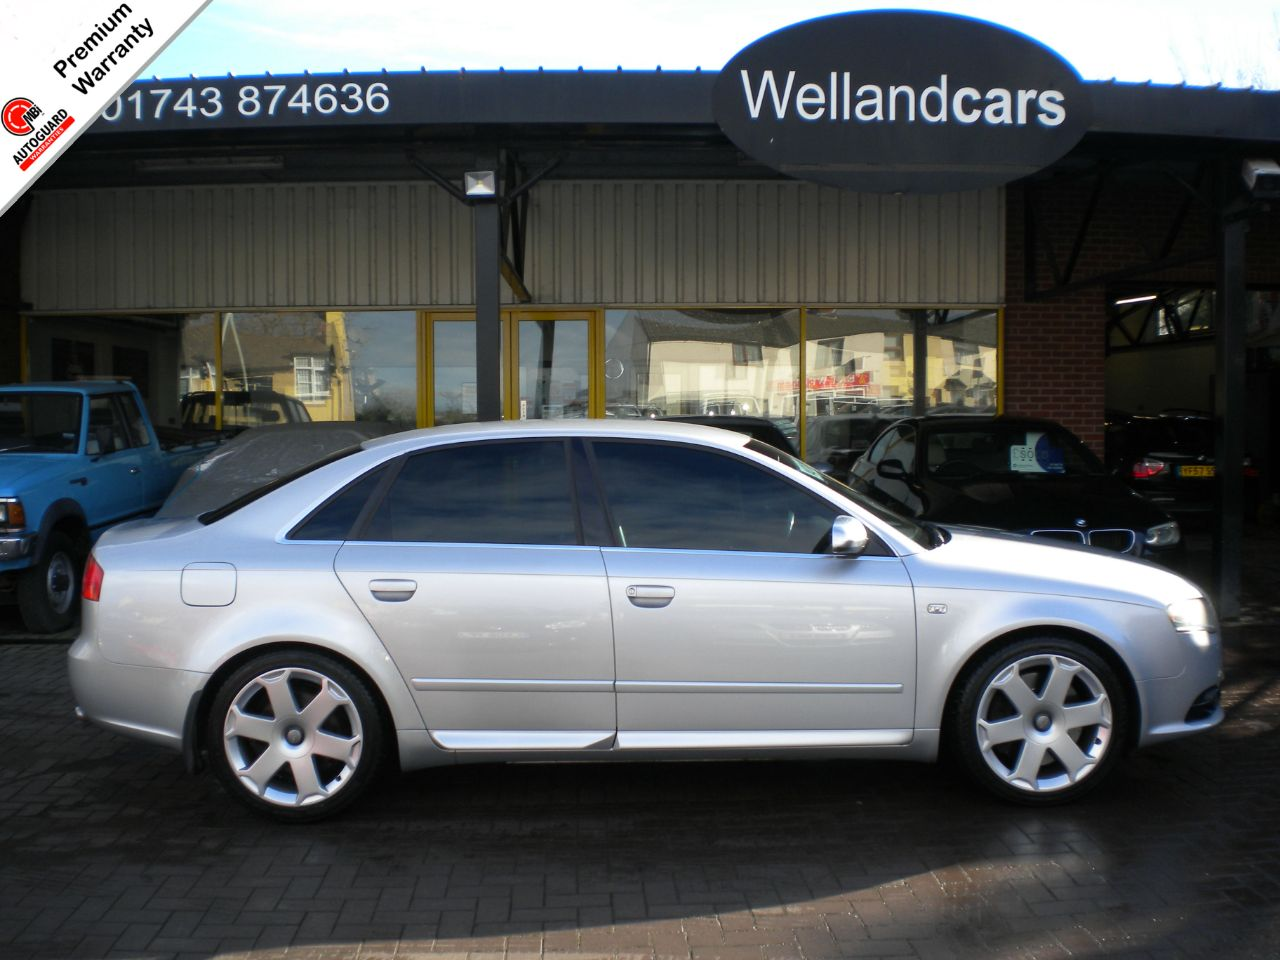 Audi S4 4.2 S4 QUATTRO AUTO/TIP, F/S/H, Red Leather,Private Plate,Lower Tax # 15 MONTH WARRANTY JUST 99 POUNDS Saloon Petrol Silver at Welland Cars Shrewsbury